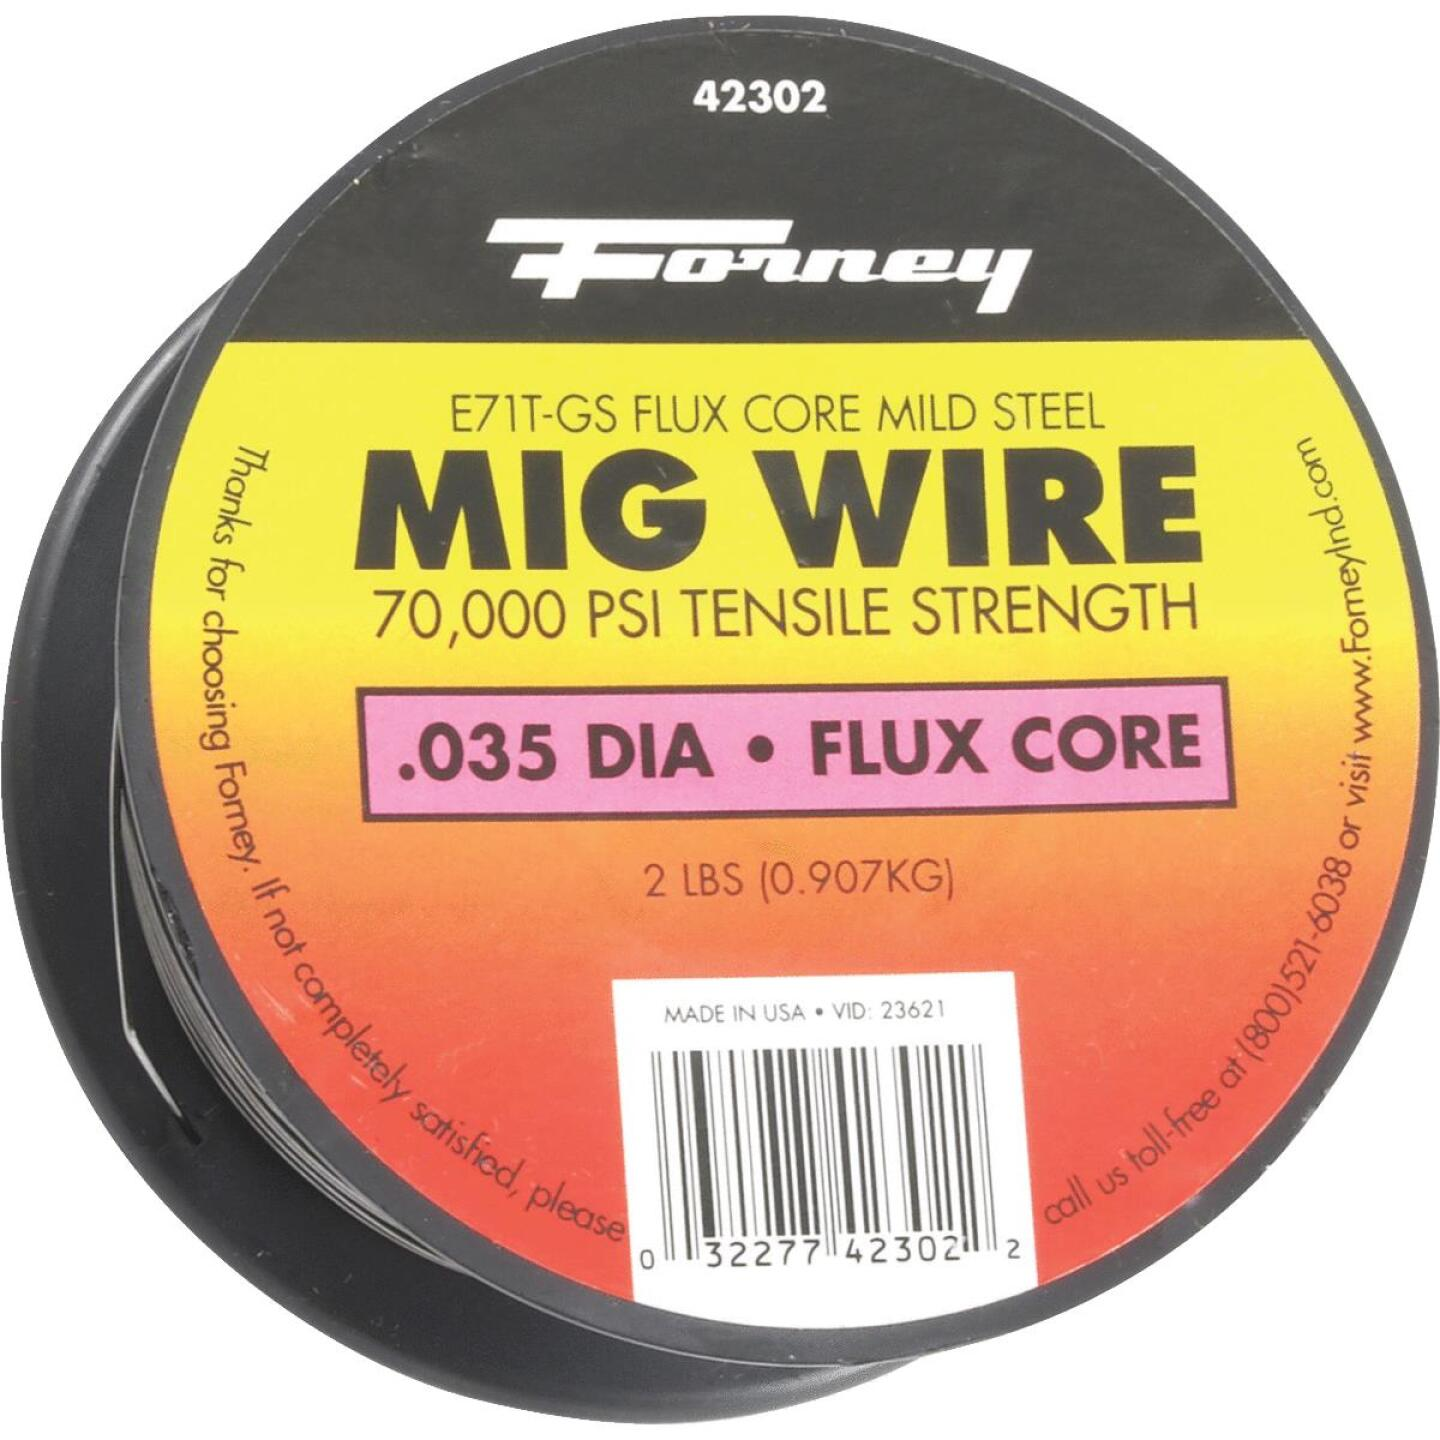 Forney E71T-GS 0.035 In. Flux Core Mild Steel Mig Wire, 2 Lb. Image 1